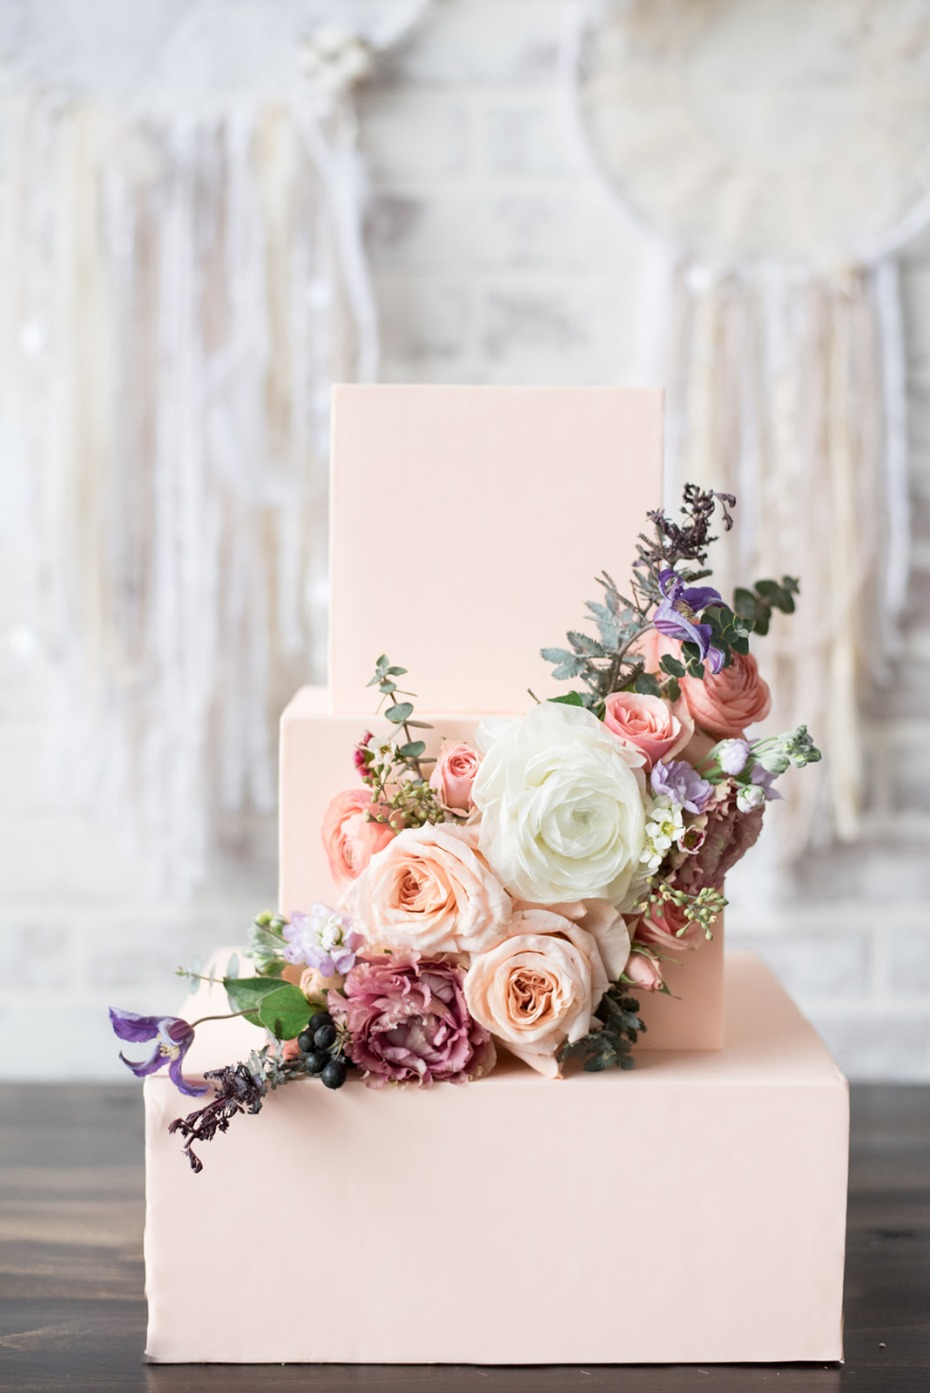 Blush square wedding cake with flowers